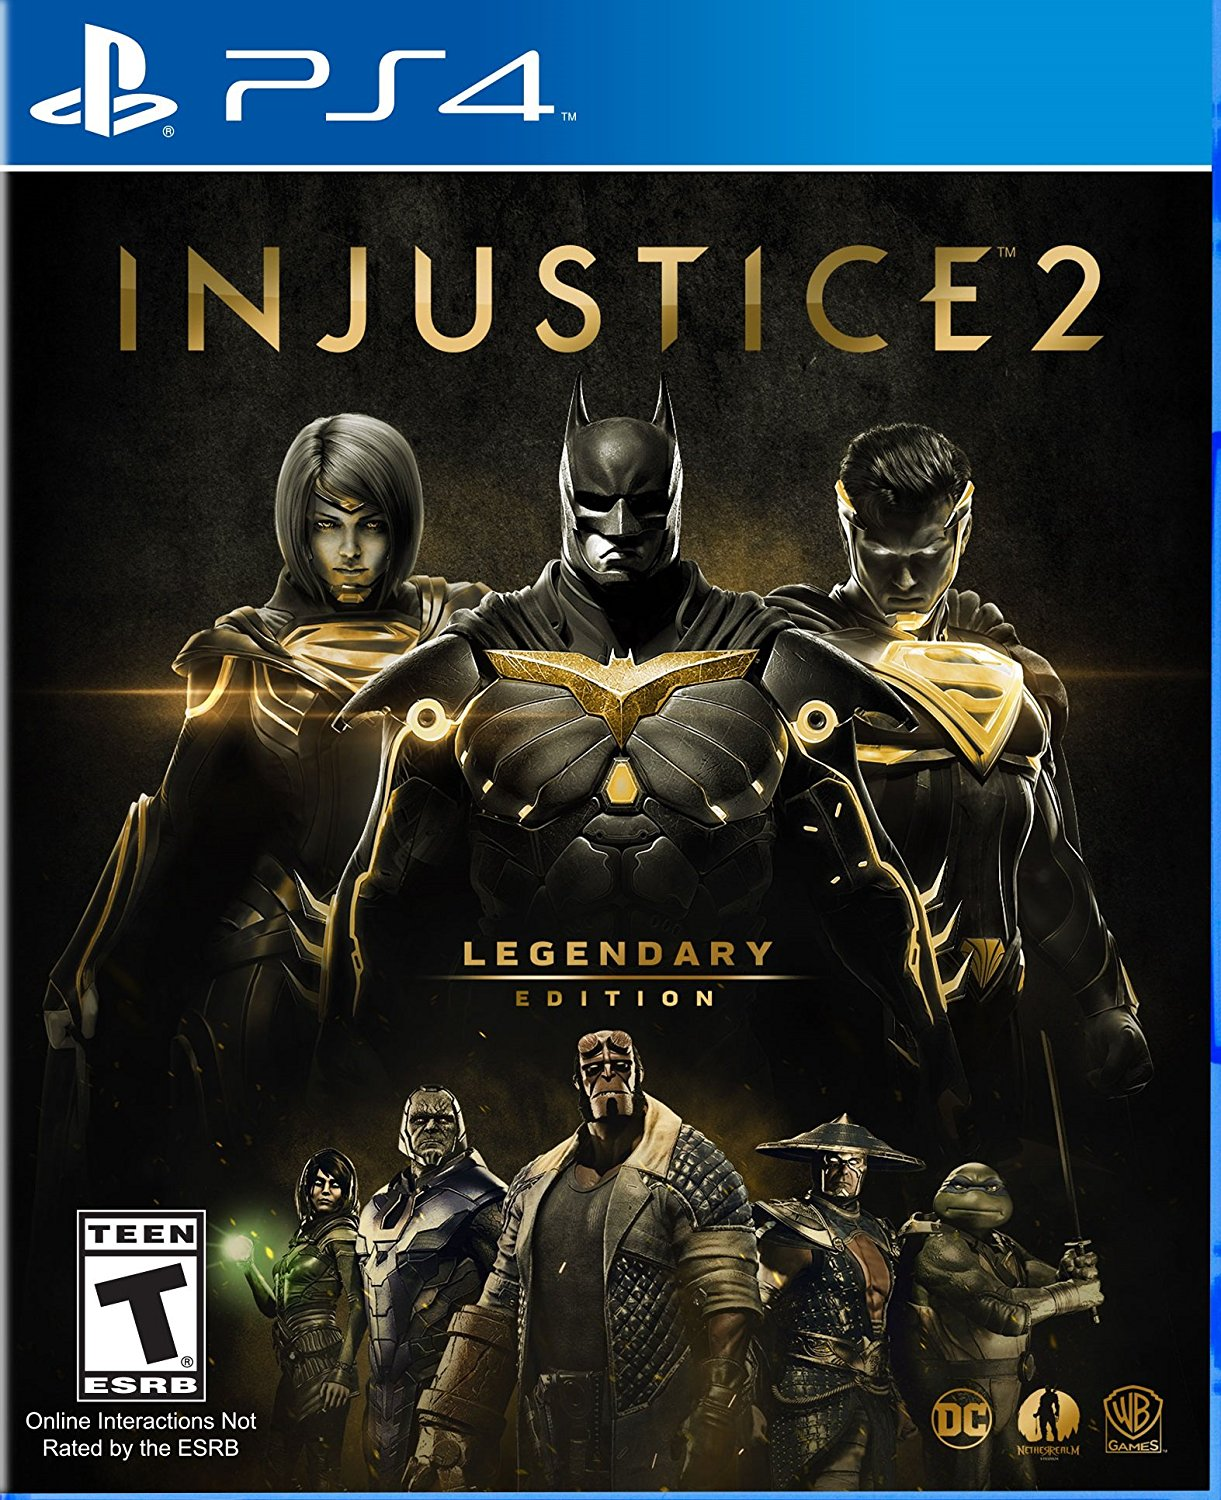 Injustice 2 Legendary Edition Leaked